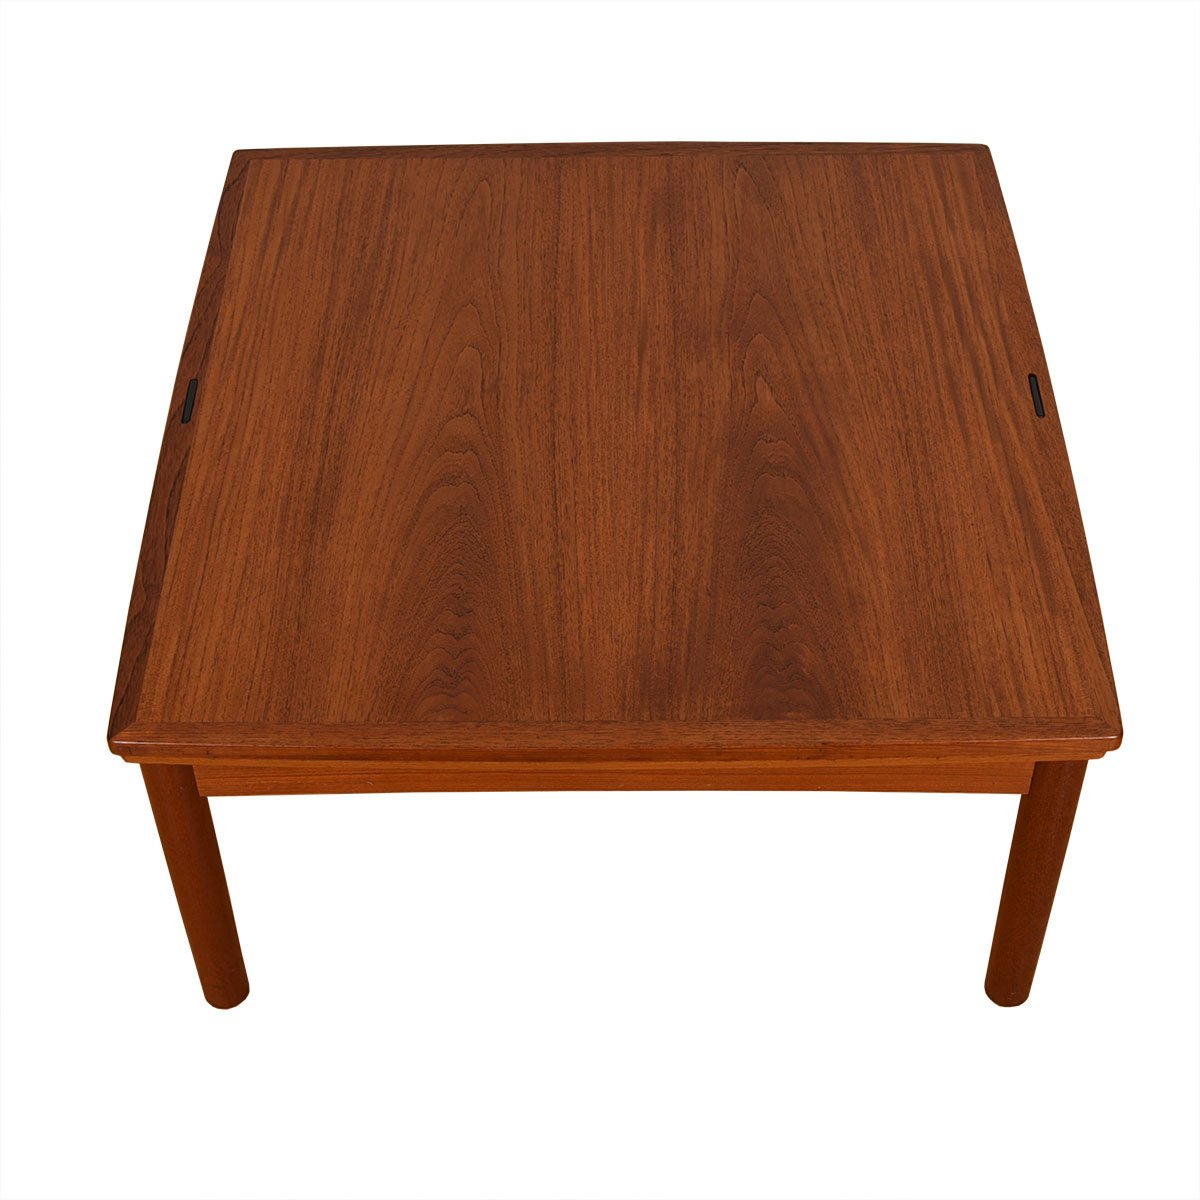 Danish Modern Teak Expanding Flip-Top Coffee Table